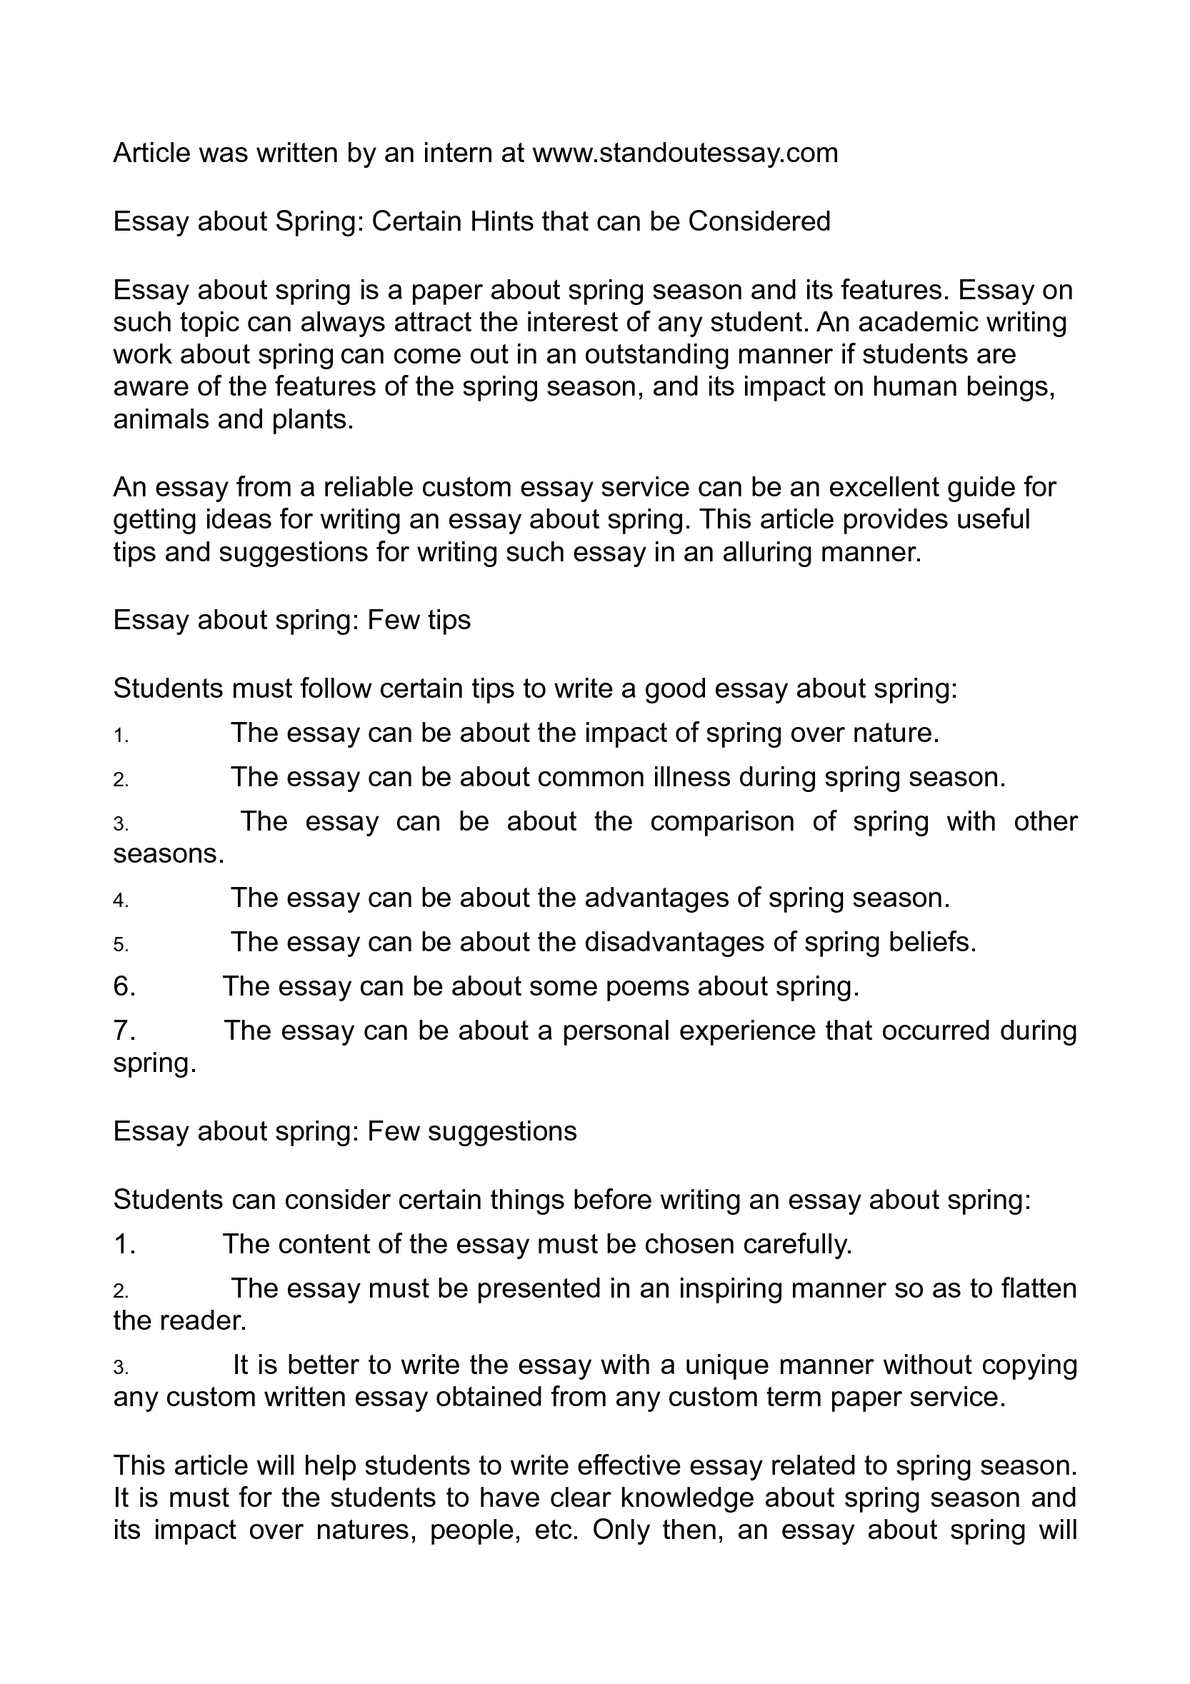 Calaméo - Essay about Spring: Certain Hints that can be Considered